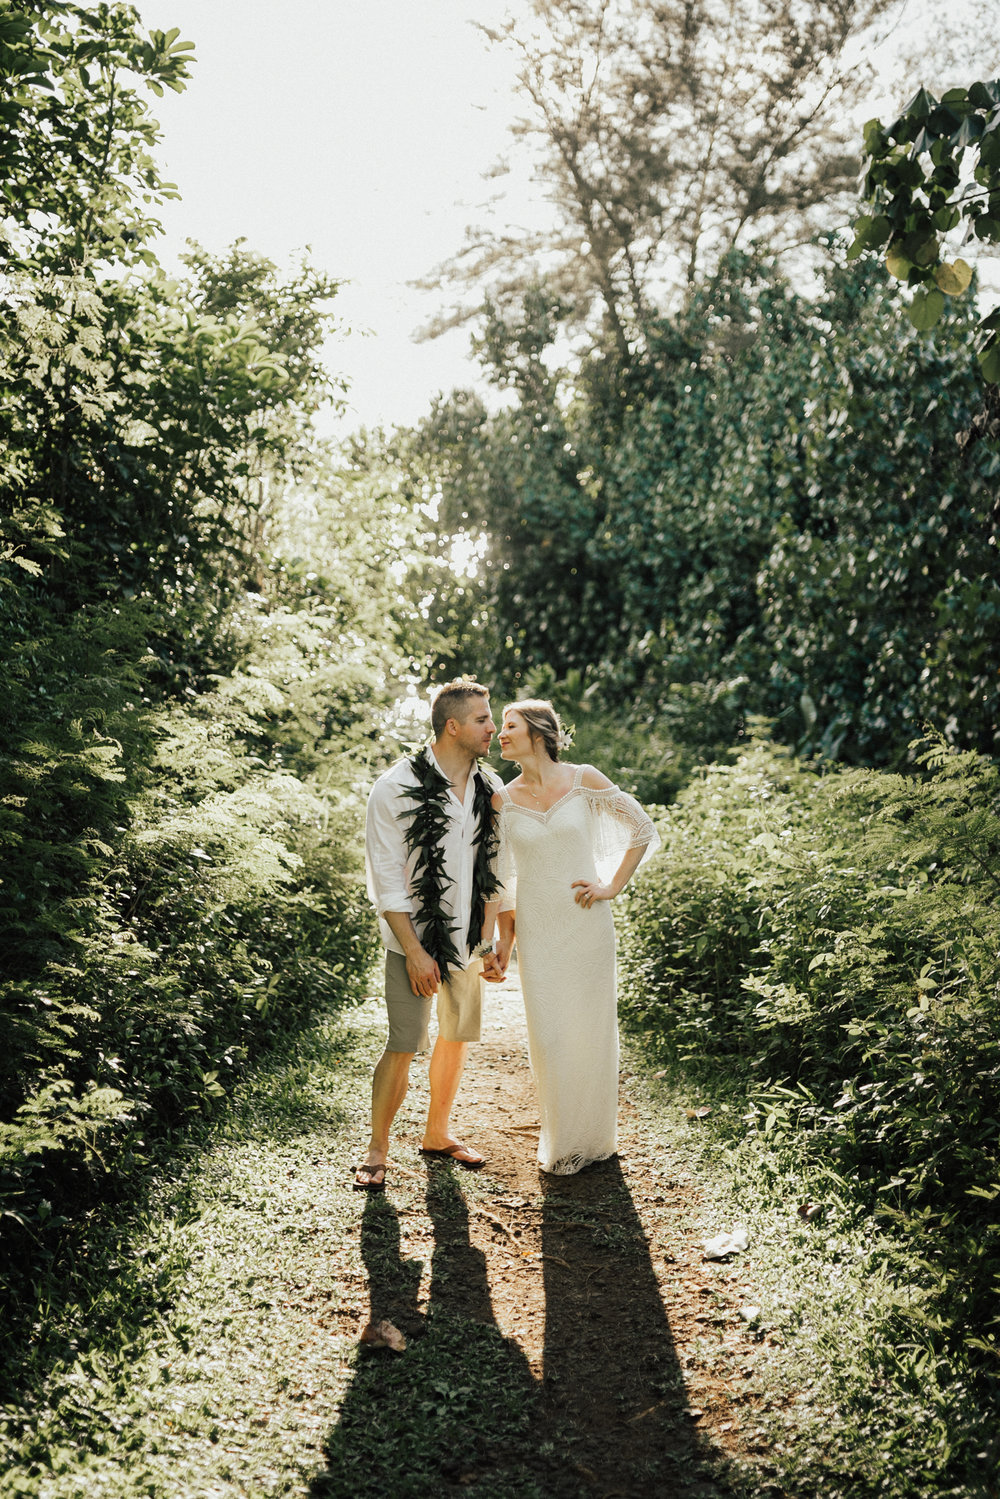 Kauai-elopement-photographer-68.jpg